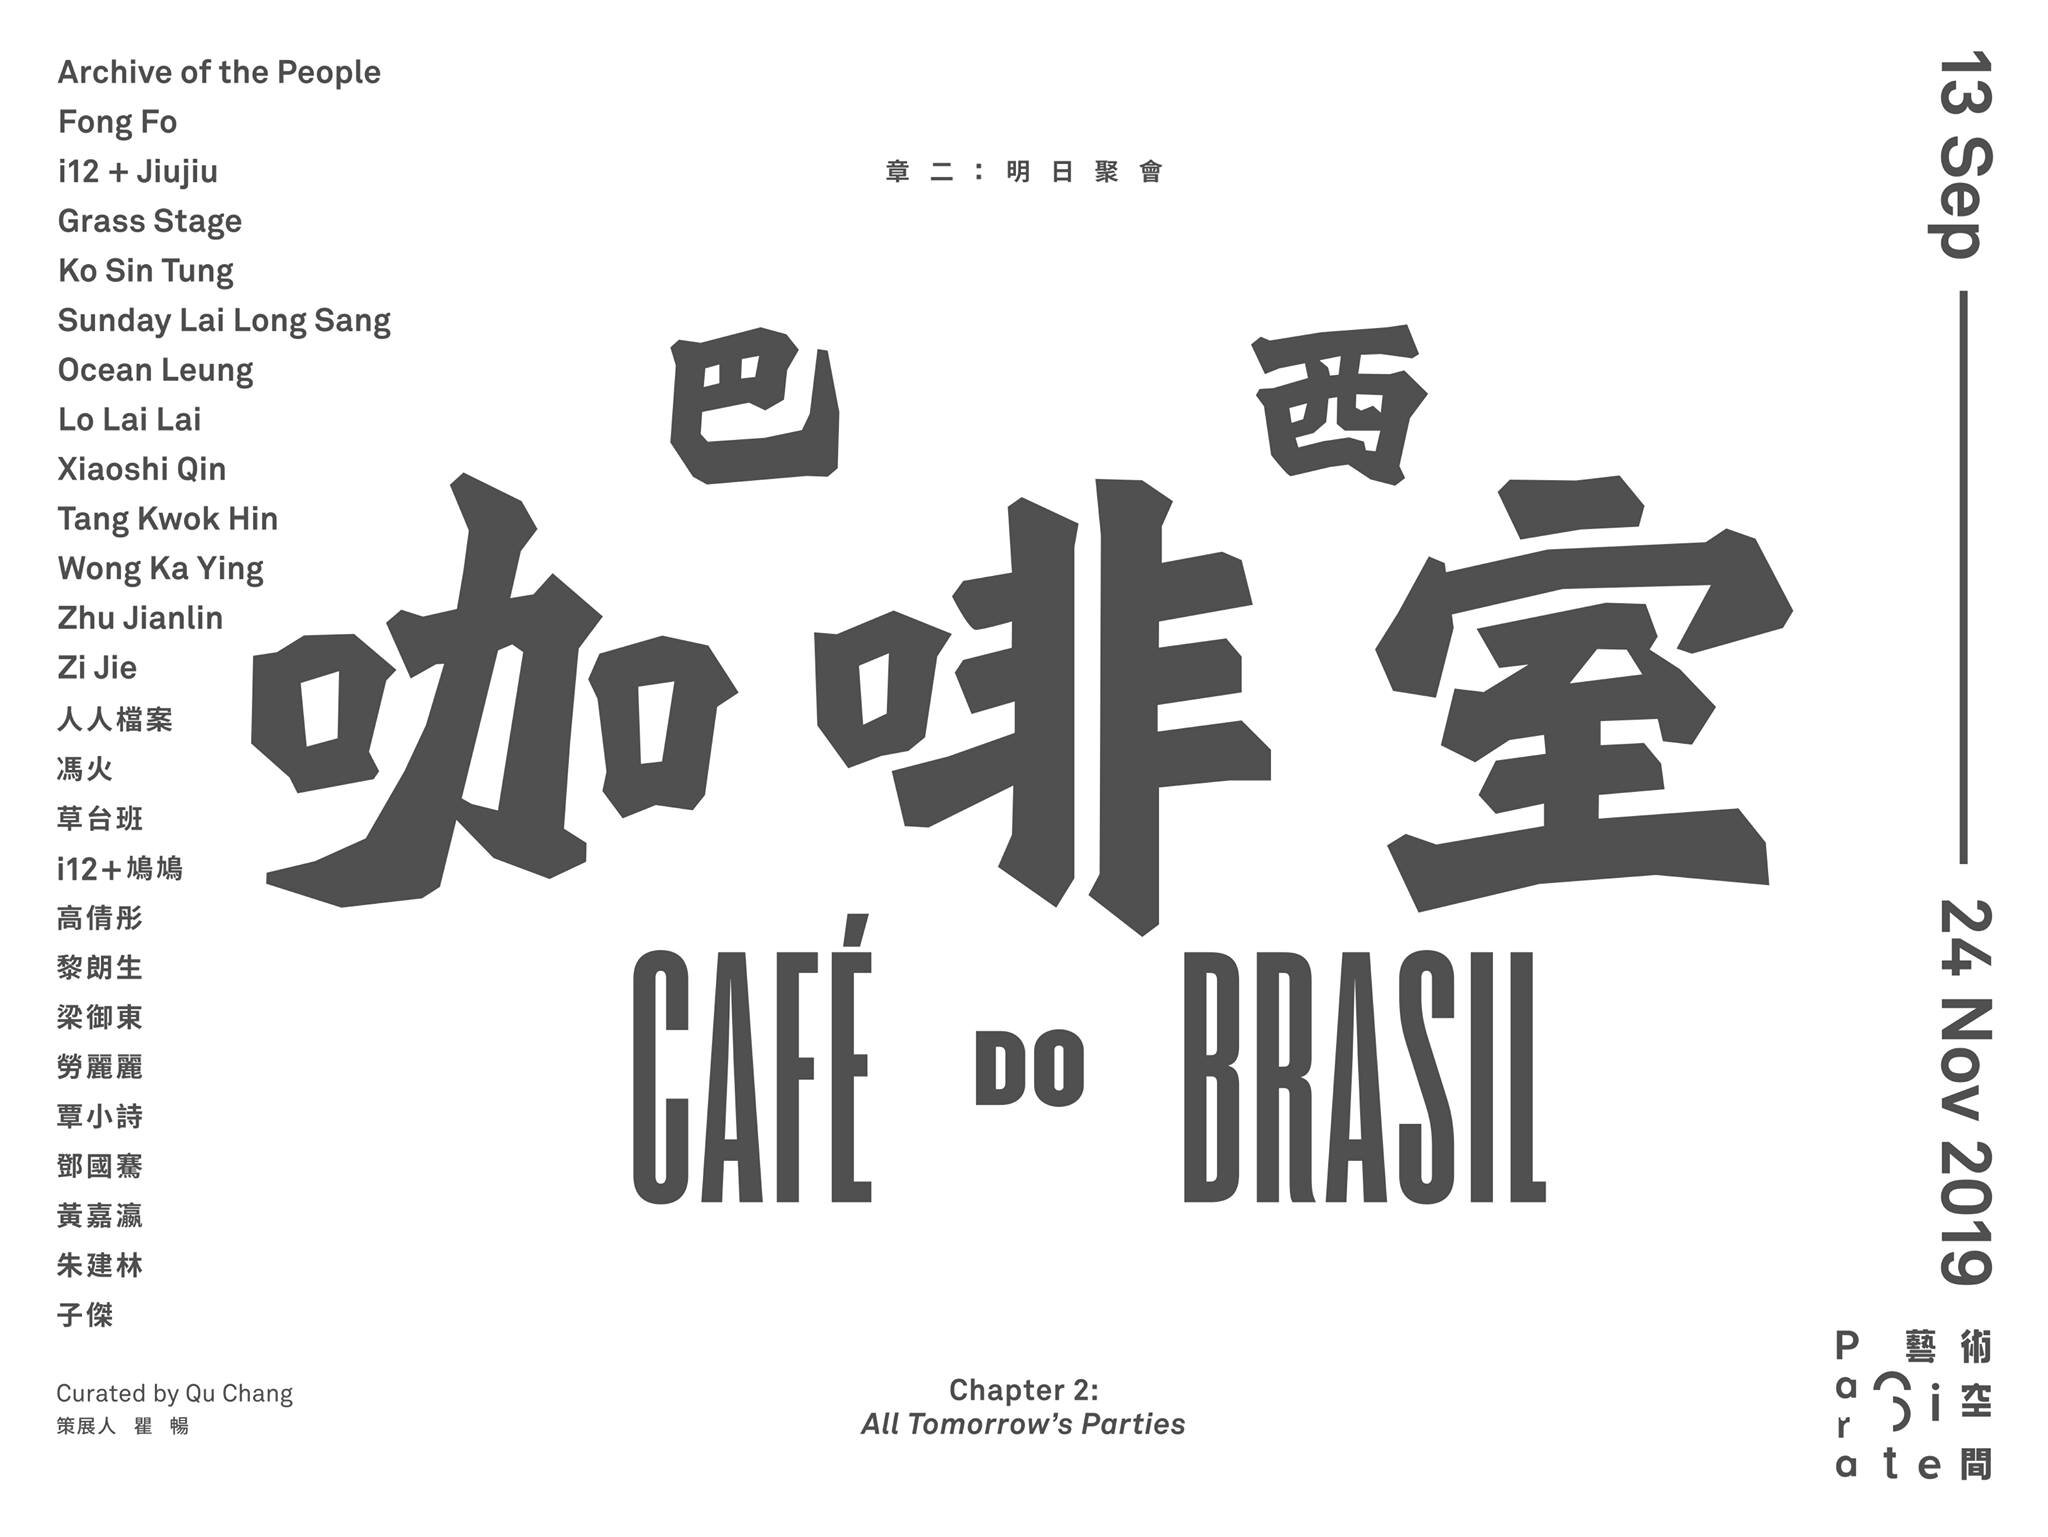 "http://www.para-site.art/exhibitions/cafe-do-brasil/    Para Site藝術空間榮幸呈獻「巴西咖啡室」,展期9月13日 - 11月24日,開幕酒會9月12日晚上7時。⁣ ⁣ 巴西咖啡室是一個聚會、談天同時攝入咖啡因飲品的地方,上世紀60至70年代中期,營運於尖沙咀海運大廈。在許多香港作家筆下,它是一間聚集着大量「文藝青年」、「探索激進社會及政治思想的地方」(呂大樂)。⁣ ⁣ 展覽由三個章節組成。「章一:咖啡店」以一間地舖咖啡店的形式回溯Para Site藝術空間的兩場歷史展覽,1998年的「咖啡店」和2007年的「一些有關美好生活的提議」。「章二:明日聚會」佔據Para Site的展覽空間,它交錯編織着當代香港及中國內地年輕藝術家們的思考及創作,並延伸出一場持續的、近似咖啡或茶室空間的多邊閒談。「章三:在一起」是伴隨展覽持續發生的公共項目,是一場「在一起」的共飲,以及對歡欣、暈眩、宿醉、懊悔、重複試錯的共同經歷。⁣ ⁣ 「巴西咖啡室」由瞿暢策劃。⁣ ⁣ ⁣ Para Site is proud to present Café do Brasil, on view 13 Sep - 24 Nov, opening reception 12 Sep, 7pm.⁣ ⁣ From the '60s through the '70s, Café do Brasil in Ocean Terminal, Tsim Sha Tsui, was the place for people to hang out and chat over drinks. The café features in the literary accounts of many Hong Kong writers as home to countless young intellectuals, a site for ""the exploration of radical social thought and politics"" (Lui Tai-lok). ⁣ ⁣ The exhibition comprises three chapters: Chapter 1: Coffee Shops uses Para Site's new street-level presence to restage and revisit two exhibitions in the institution's 23-year history—Coffee Shop in 1998 and ¾ suggestions for a better living in 2007. Occupying the entirety of Para Site's main exhibition space, Chapter 2: All Tomorrow's Parties interweaves works by contemporary artists from Hong Kong and mainland China with scavenged fragments that refer to Café do Brasil to encourage an ongoing, multilateral conversation. Finally, Chapter Three: Together, a public programme series taking place throughout the exhibition period, acts as an extension of the show—a get-together, a shared experience of joy, vertigo, hangover, regret, along with trial-and-error.⁣ ⁣ Café do Brasil is curated by Qu Chang.⁣ ⁣"